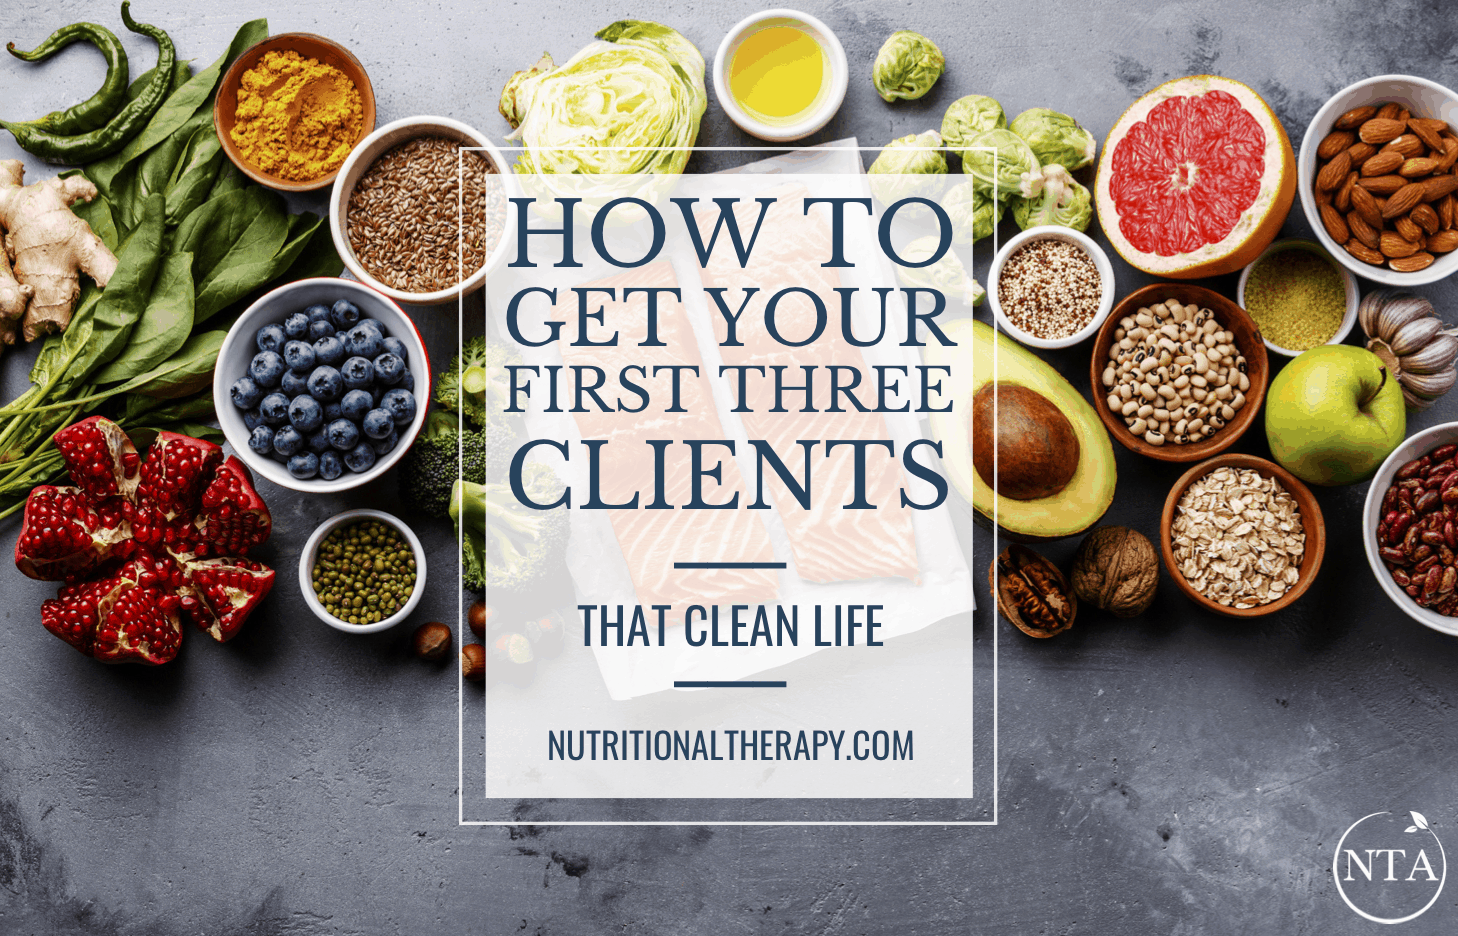 How To Get Your First Three Clients As A Nutrion Professional